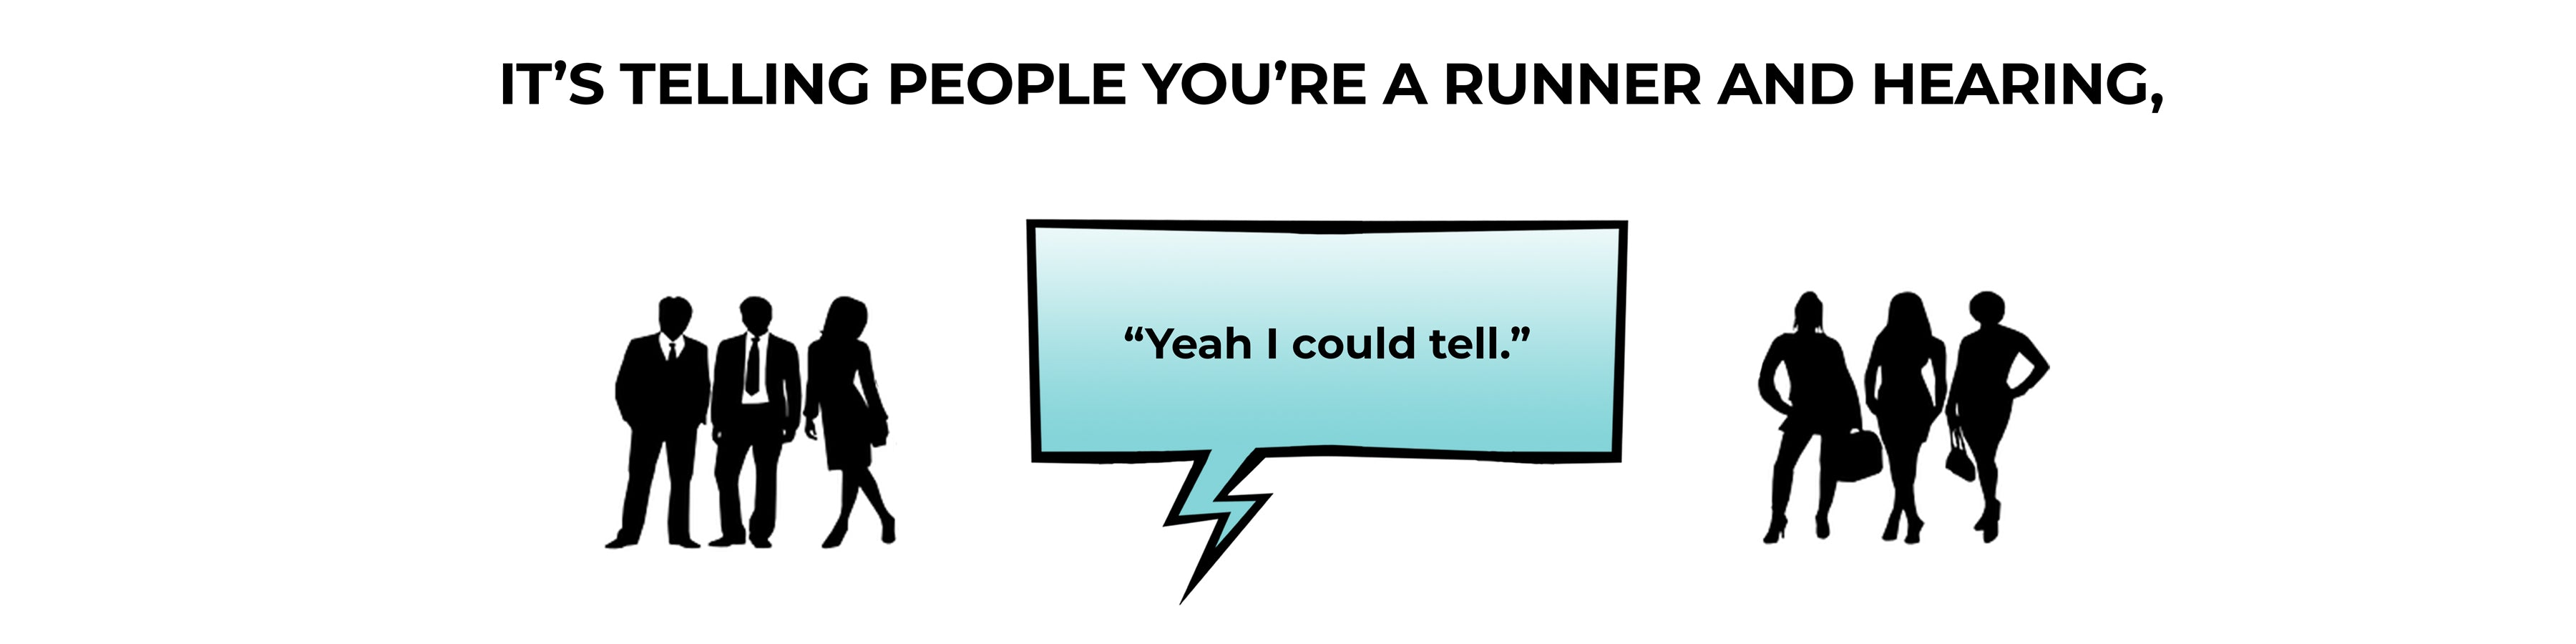 """It's telling people you're a runner and hearing, """"Yeah I could tell."""""""